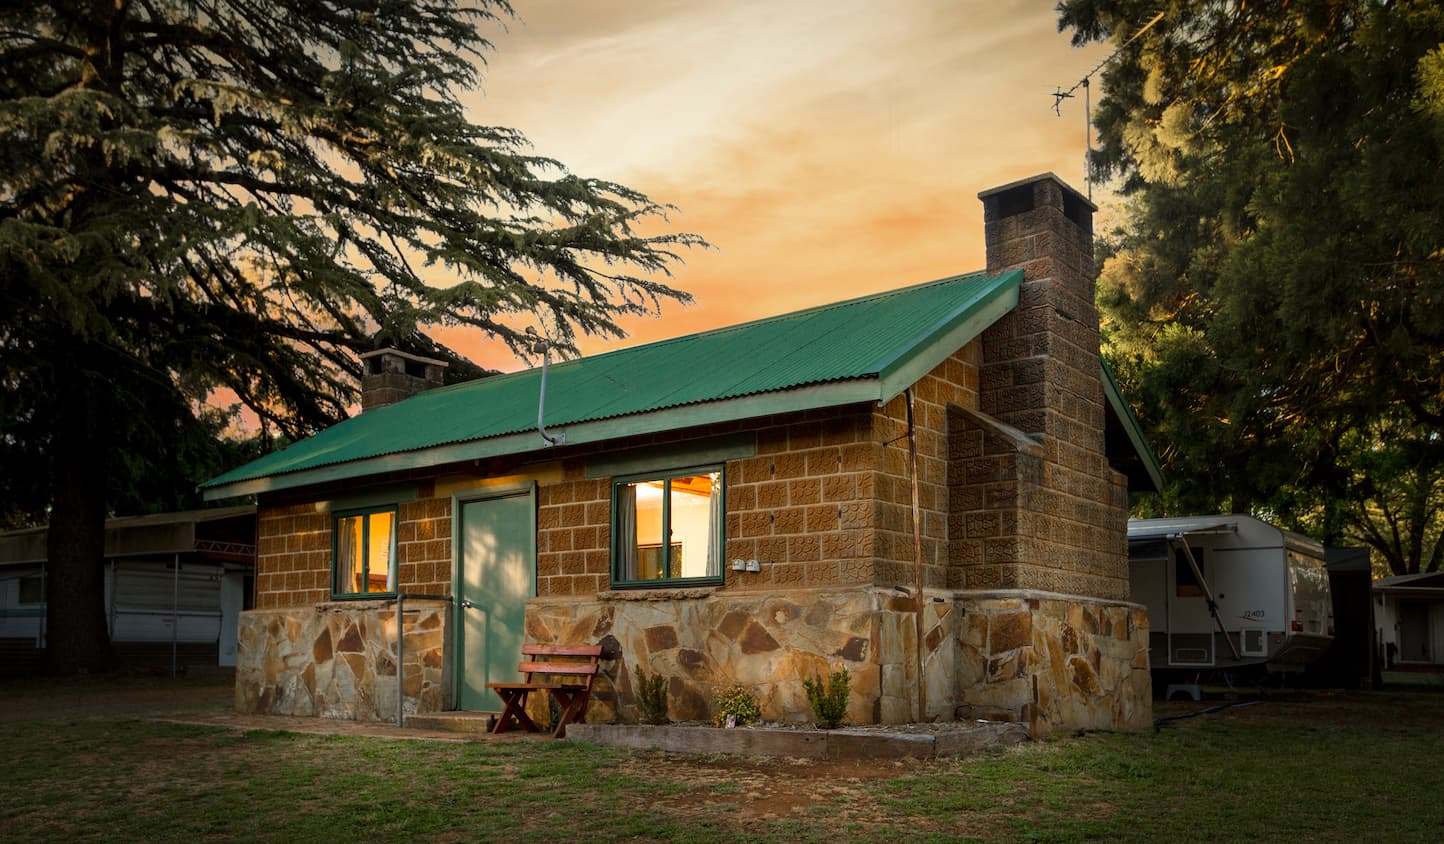 Daylesford Holiday Park Camping Cabins Caravans